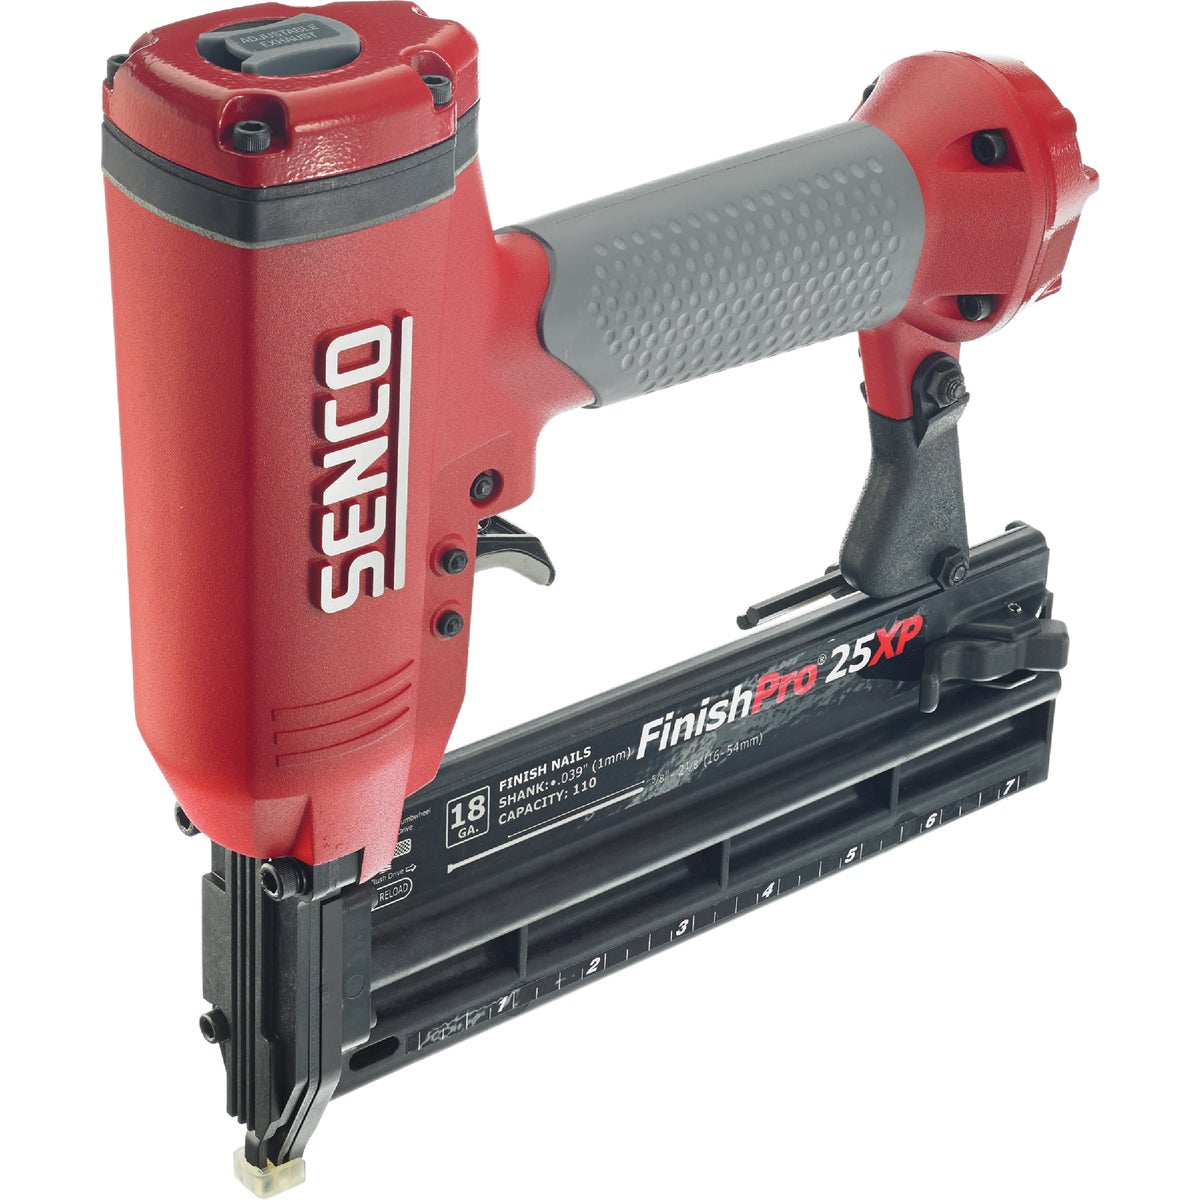 FINISHPRO 25XP NAILER - 760102N by Senco Brands